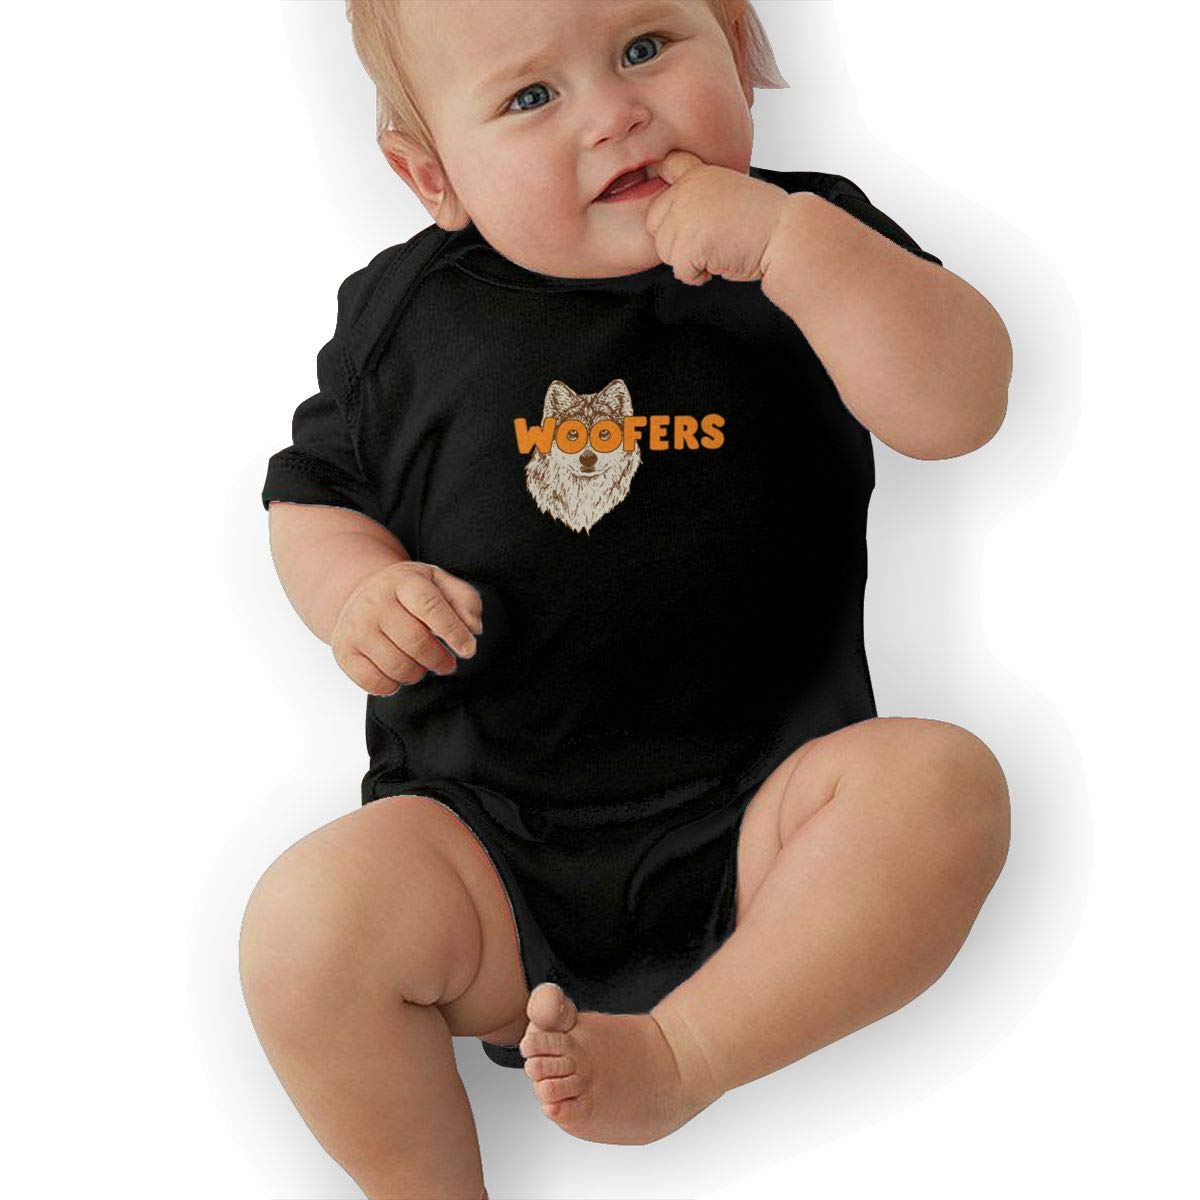 Bodysuits Clothes Onesies Jumpsuits Outfits Black HappyLifea Woofers Baby Pajamas